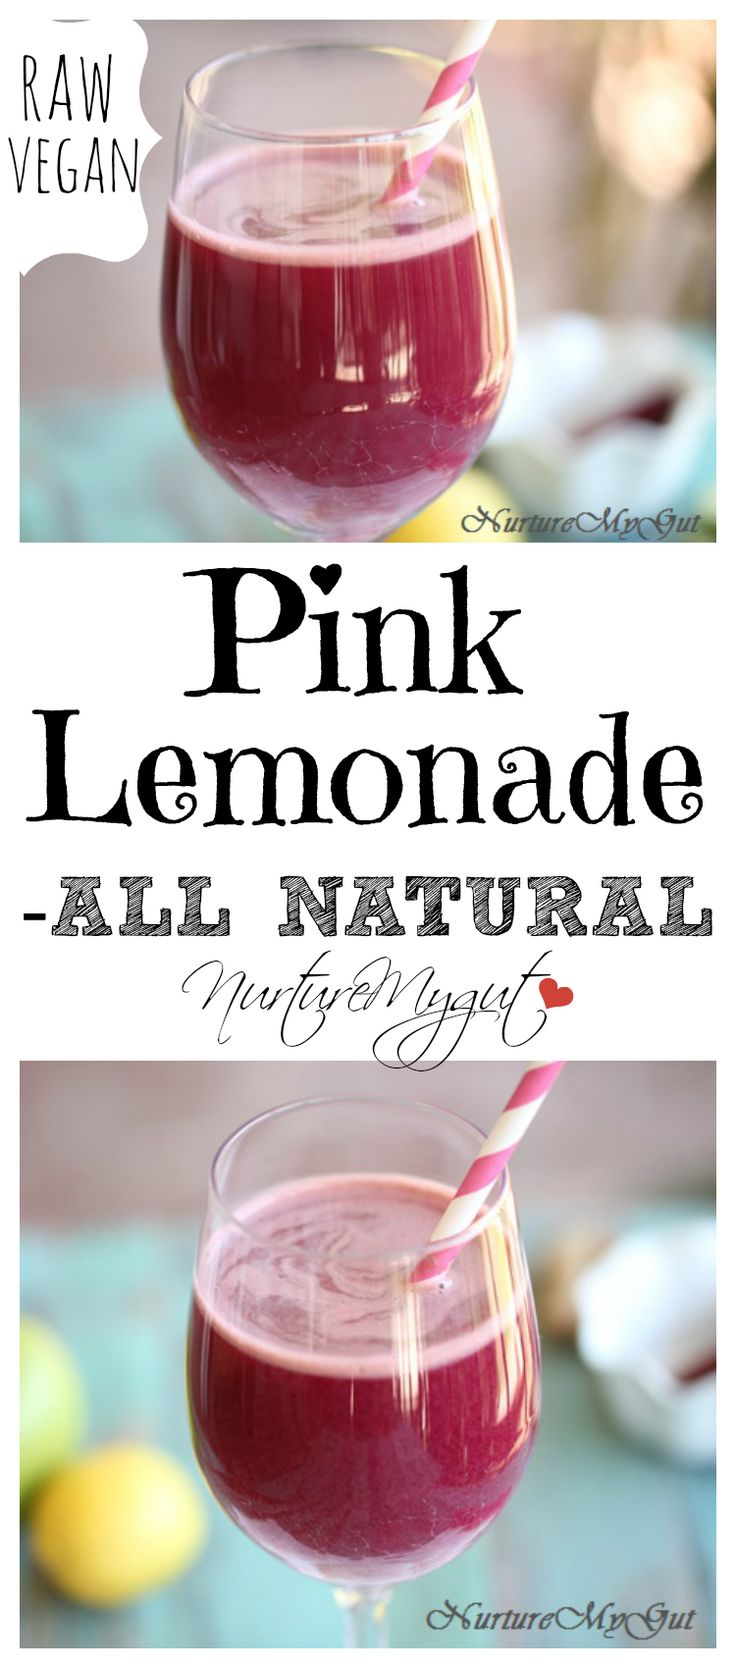 All Natural Pink Lemonade.  Made with fresh fruits and vegetables.  Absolutely delicious!  Raw Vegan/Paleo/Gluten Free.